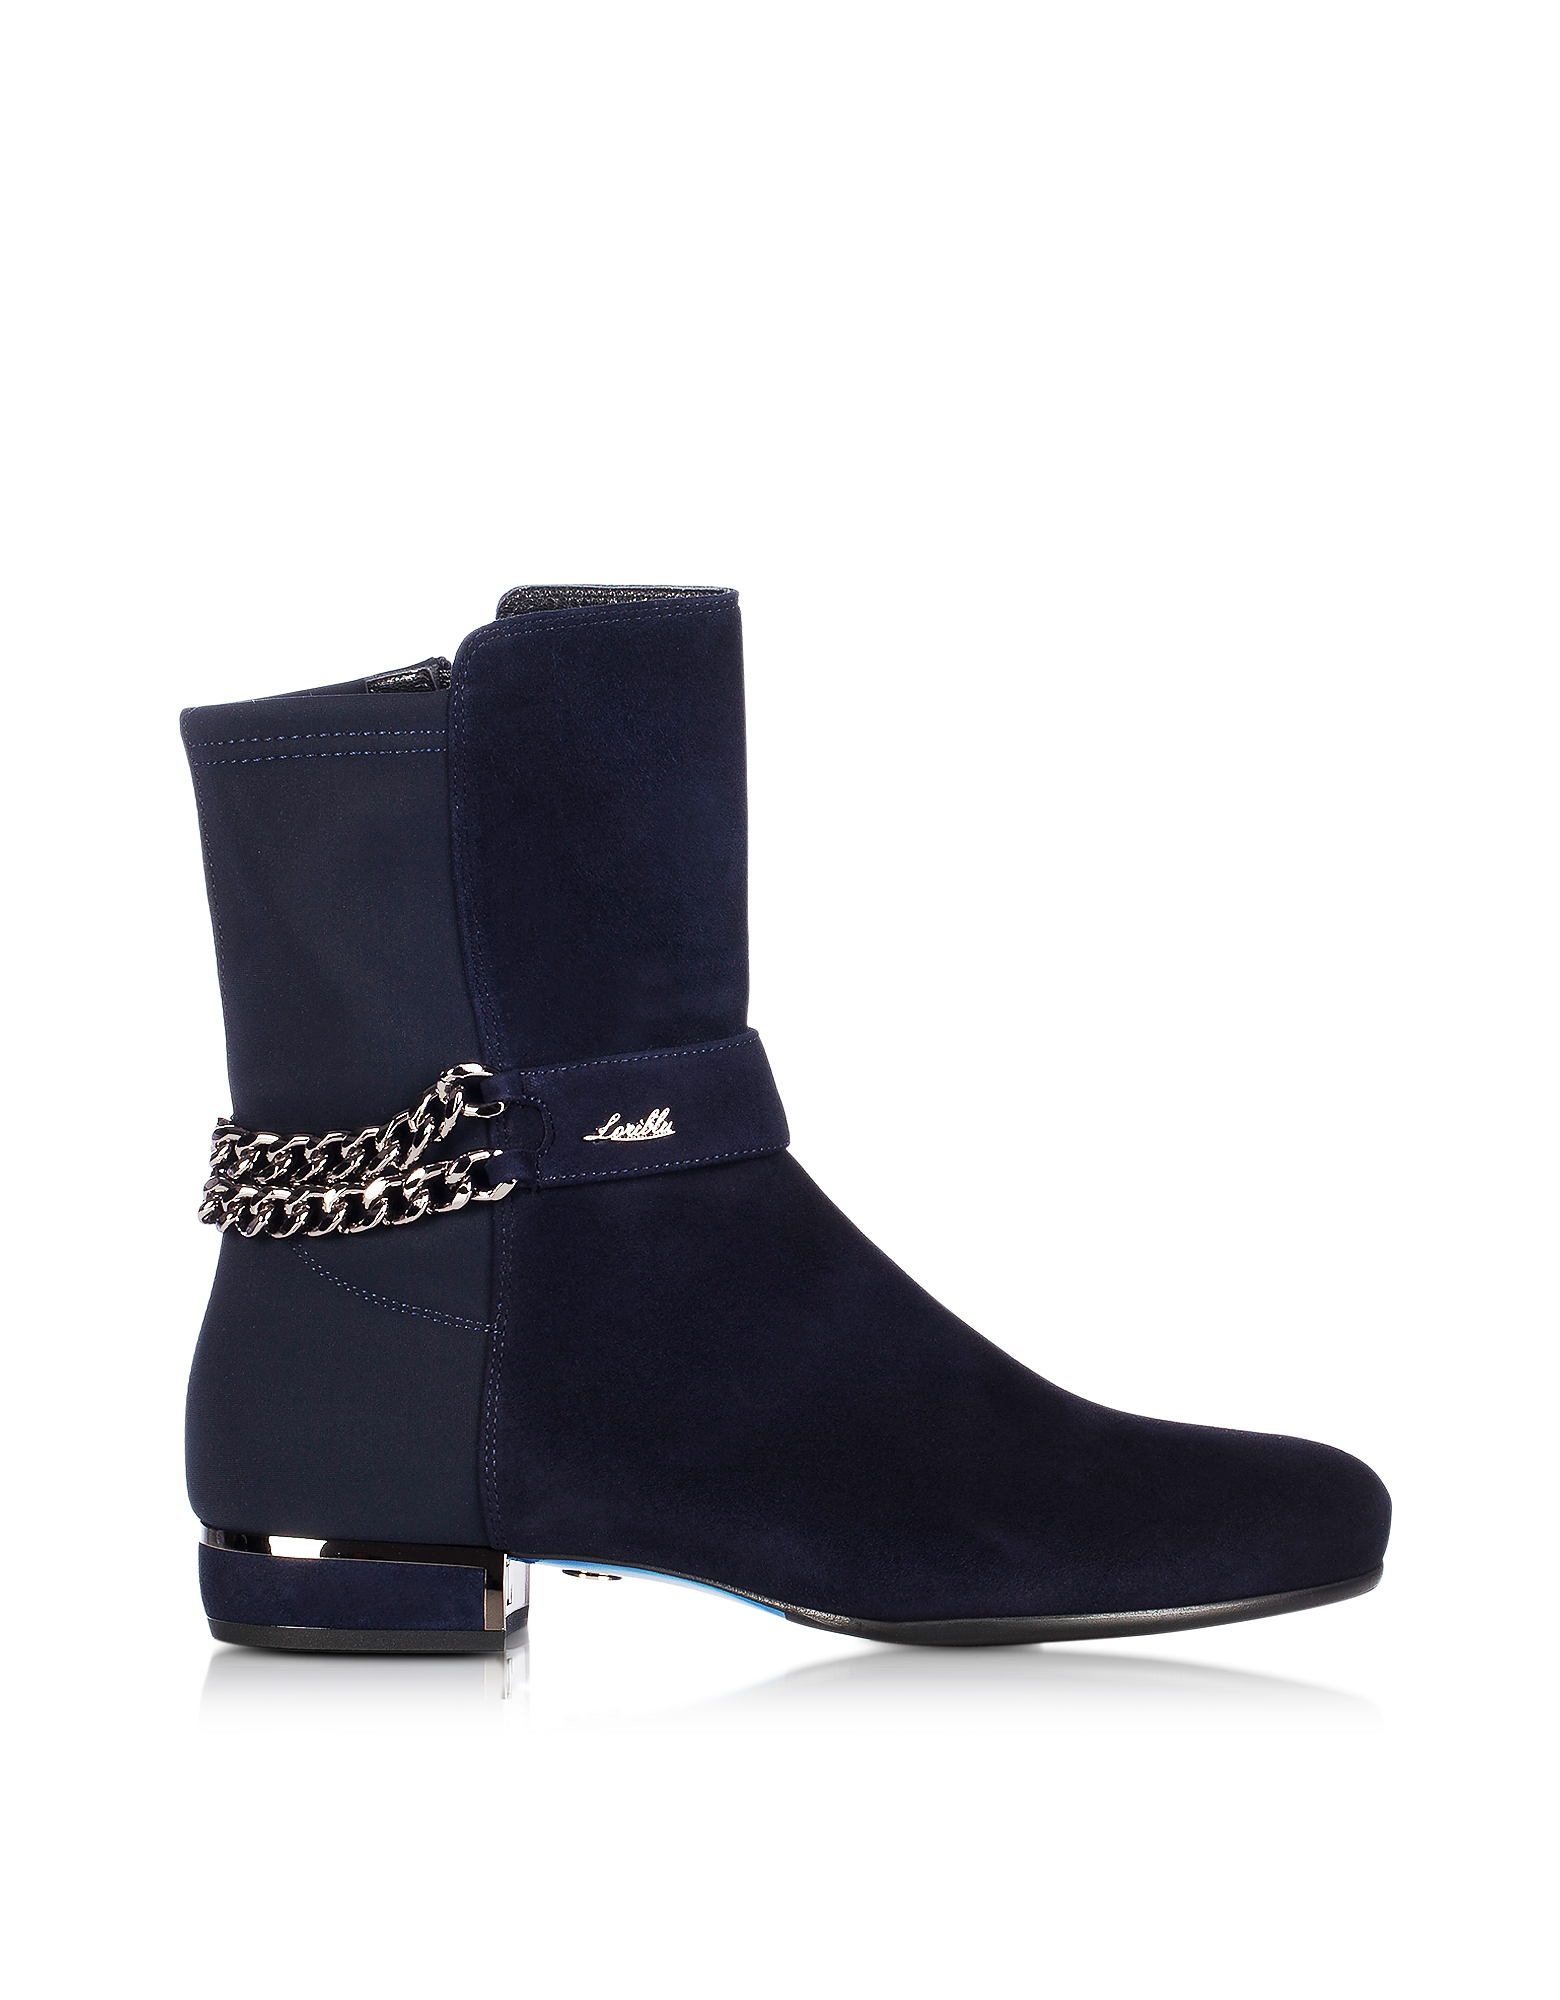 Loriblu Shoes, Night Blue Suede Bootie